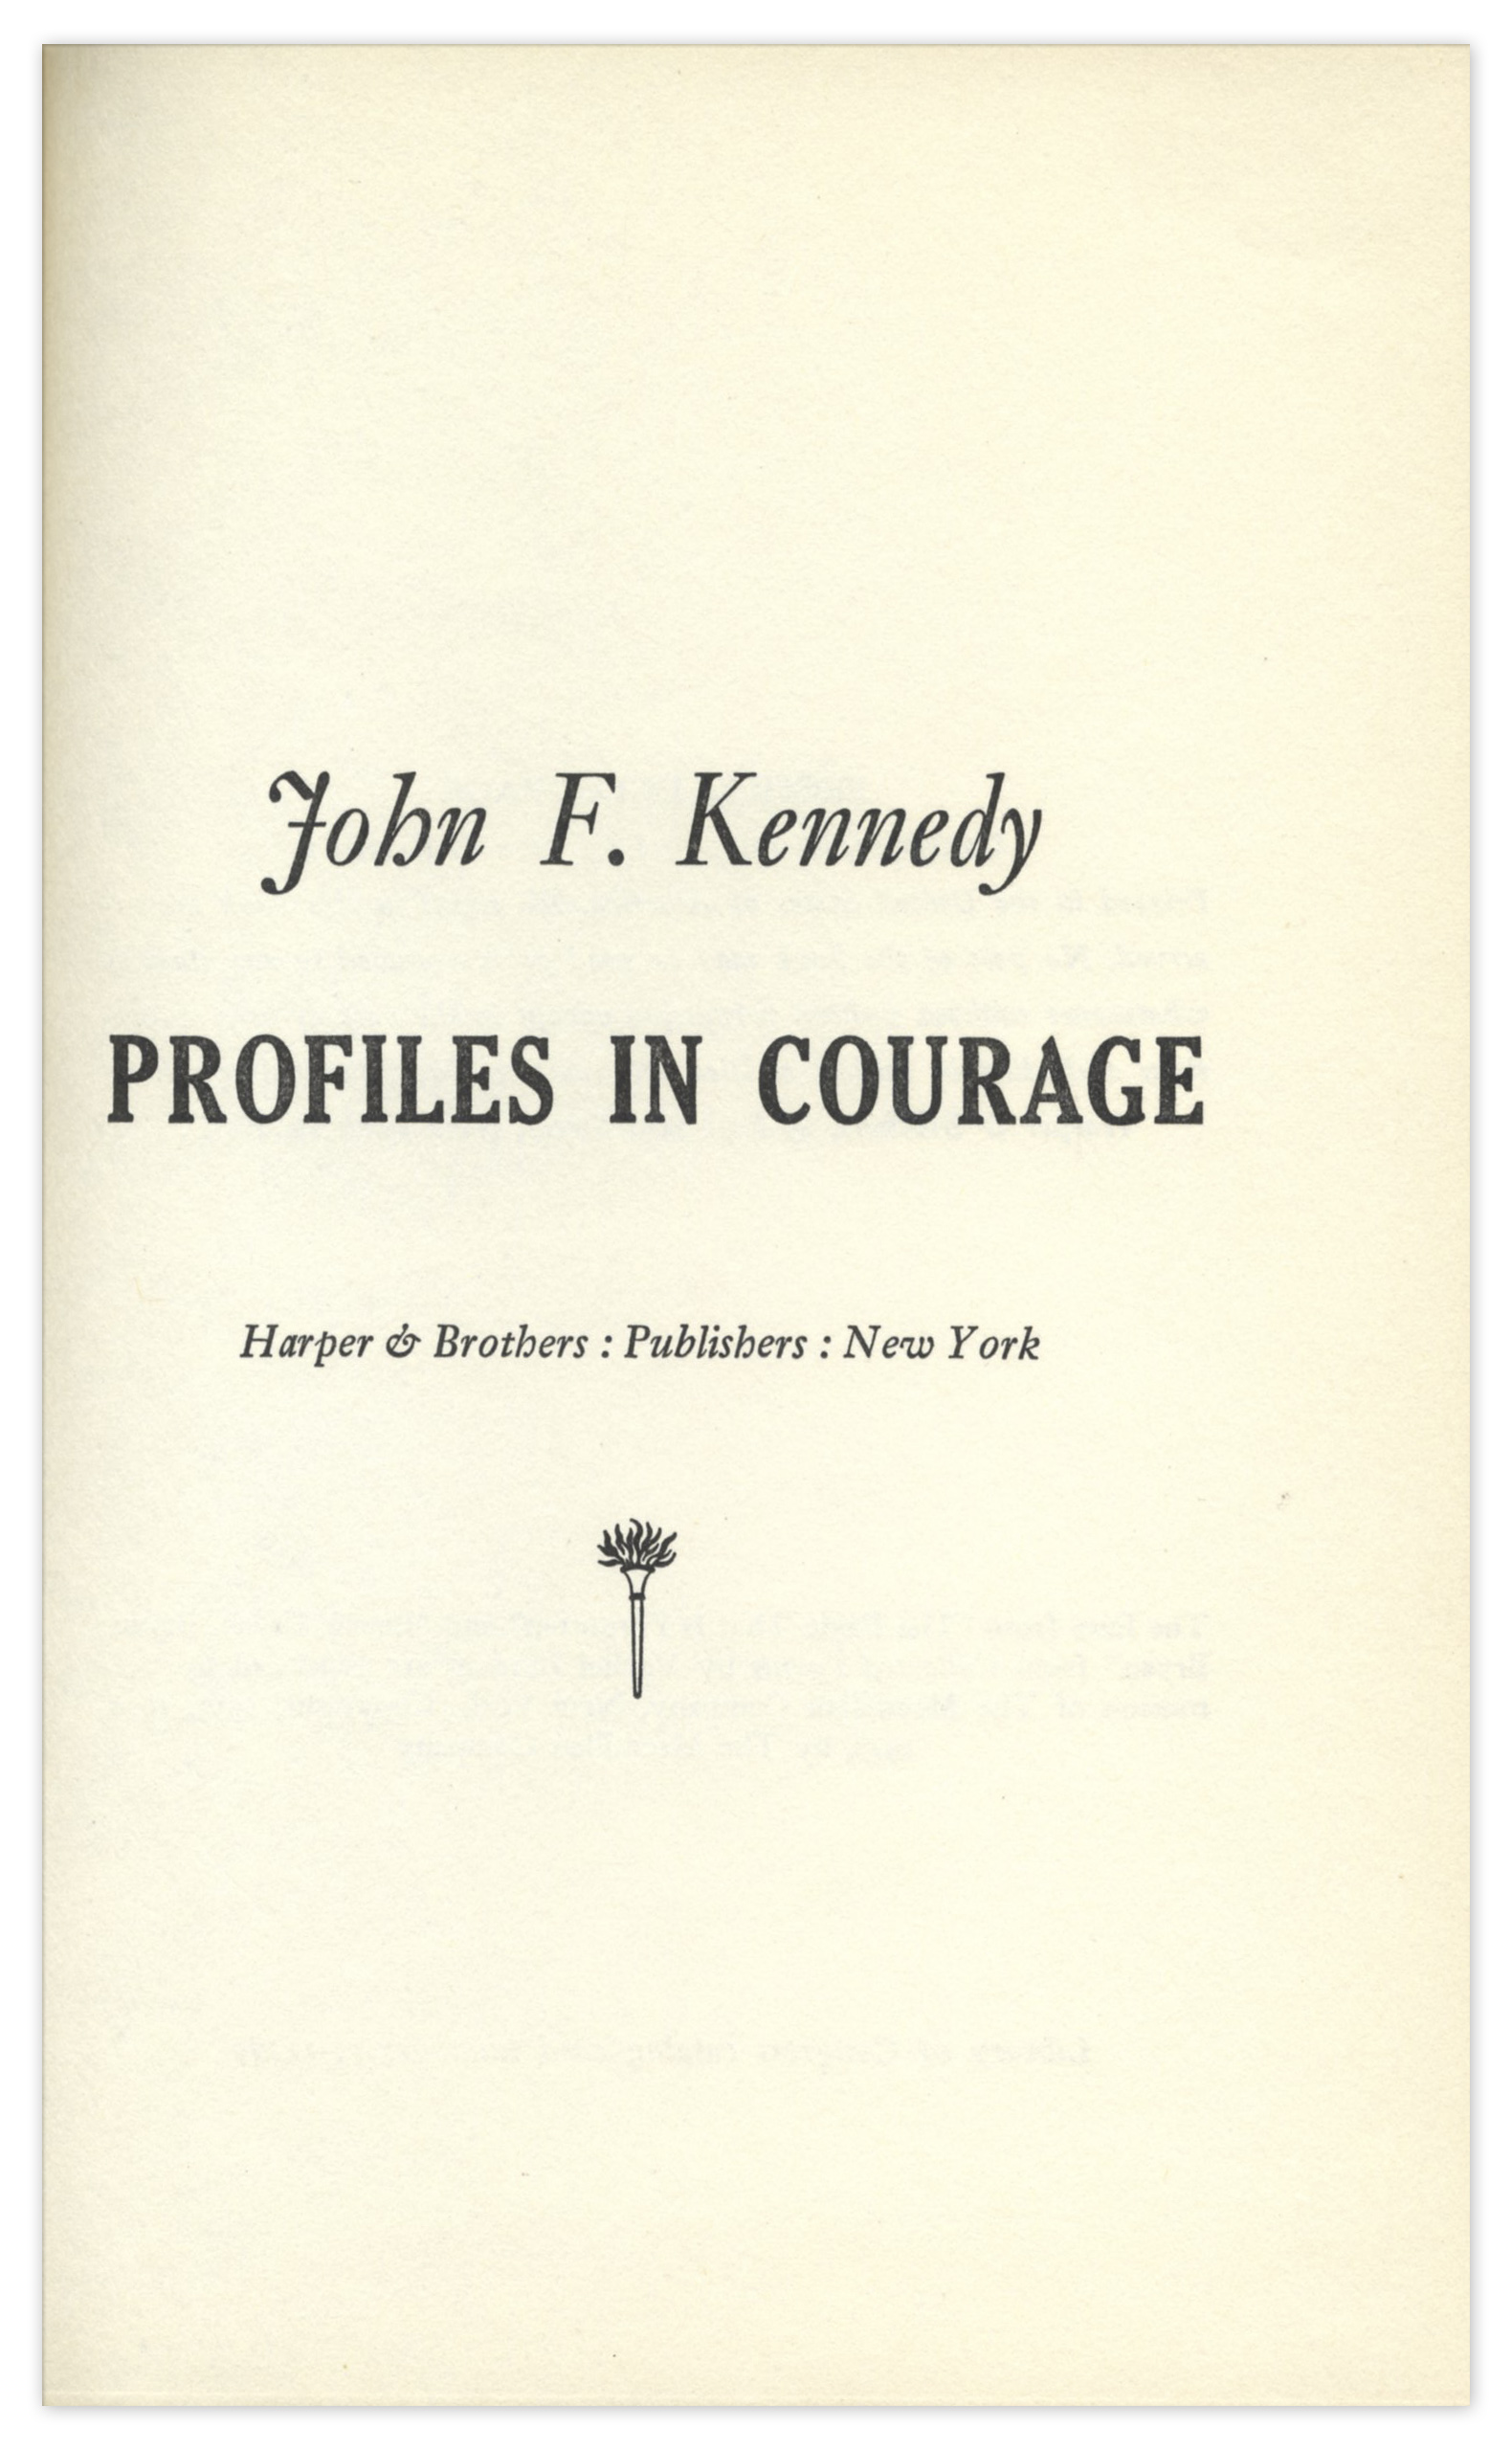 profiles in courage scholarship essay